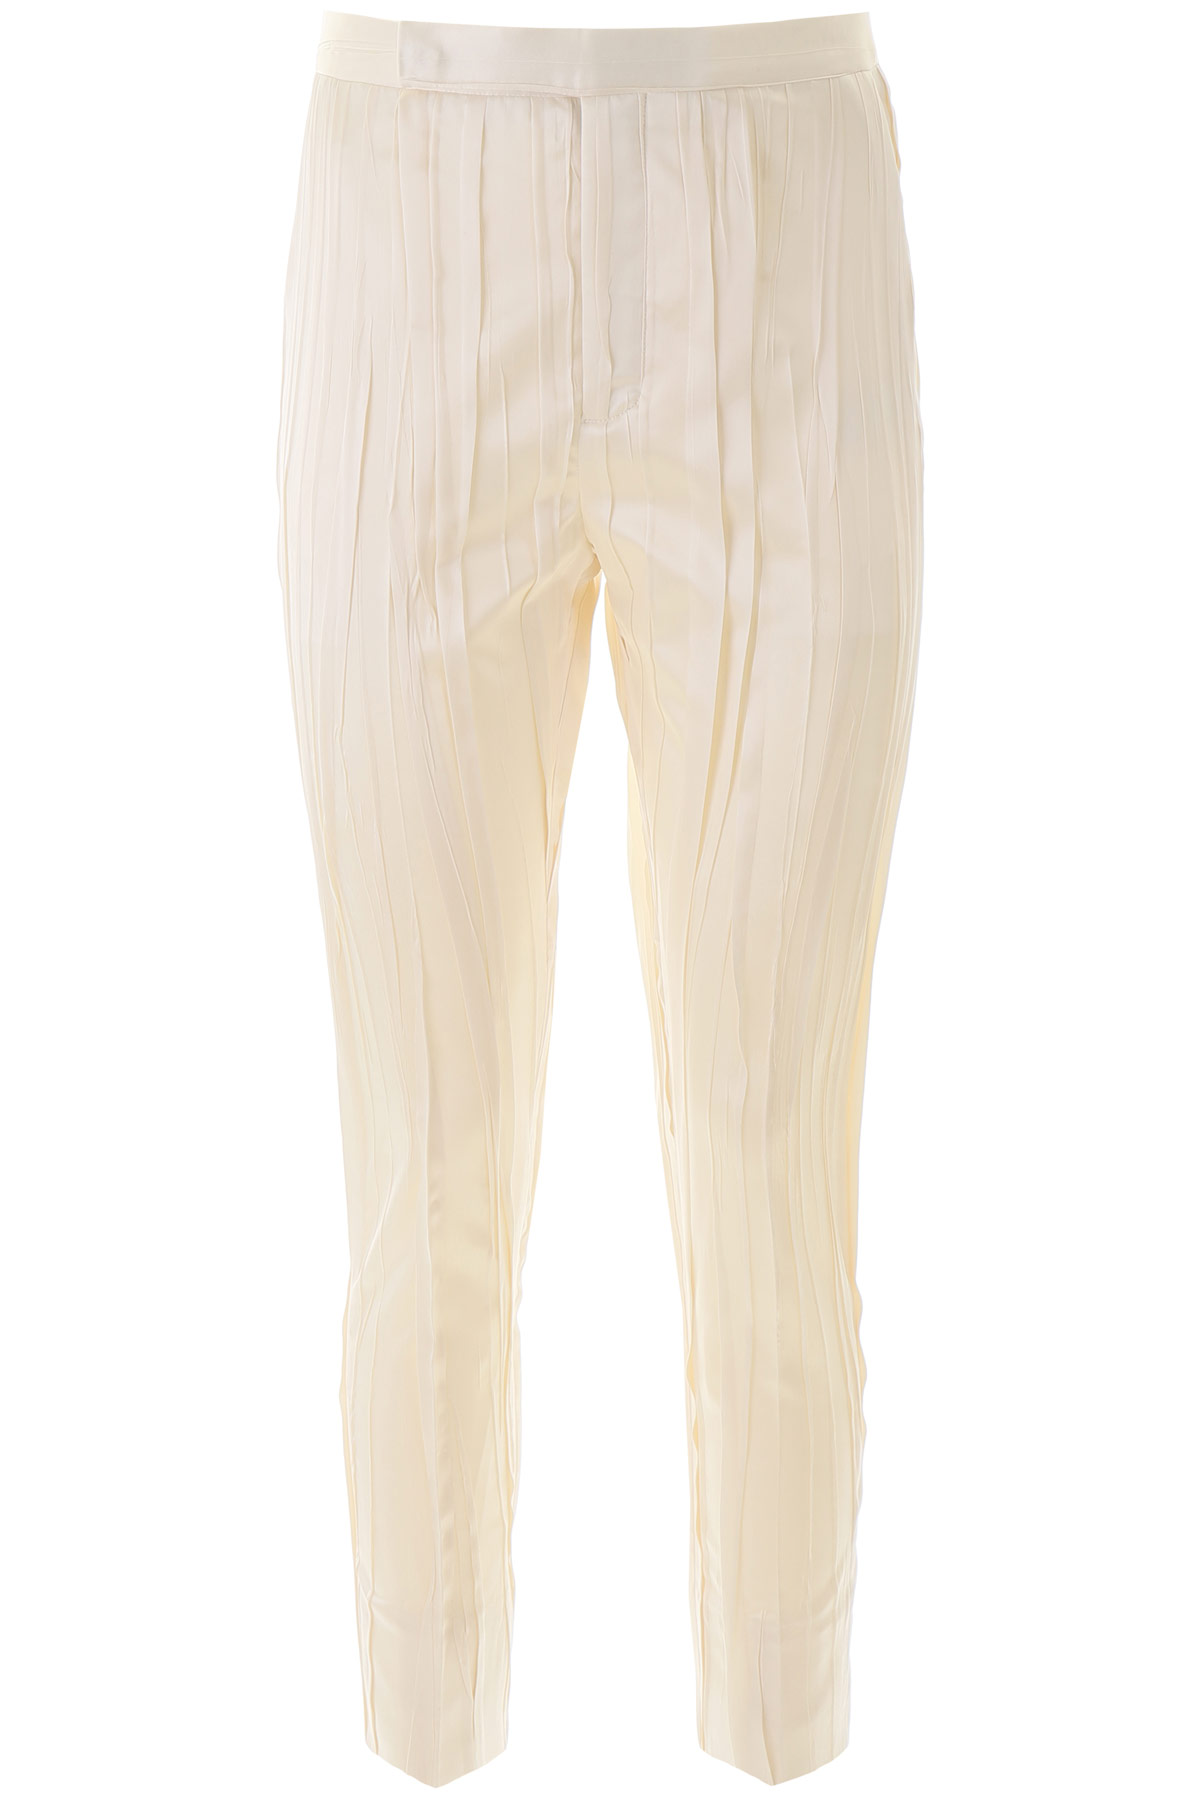 SAINT LAURENT CRINKLE PLEATED SATIN TROUSERS 36 White Silk